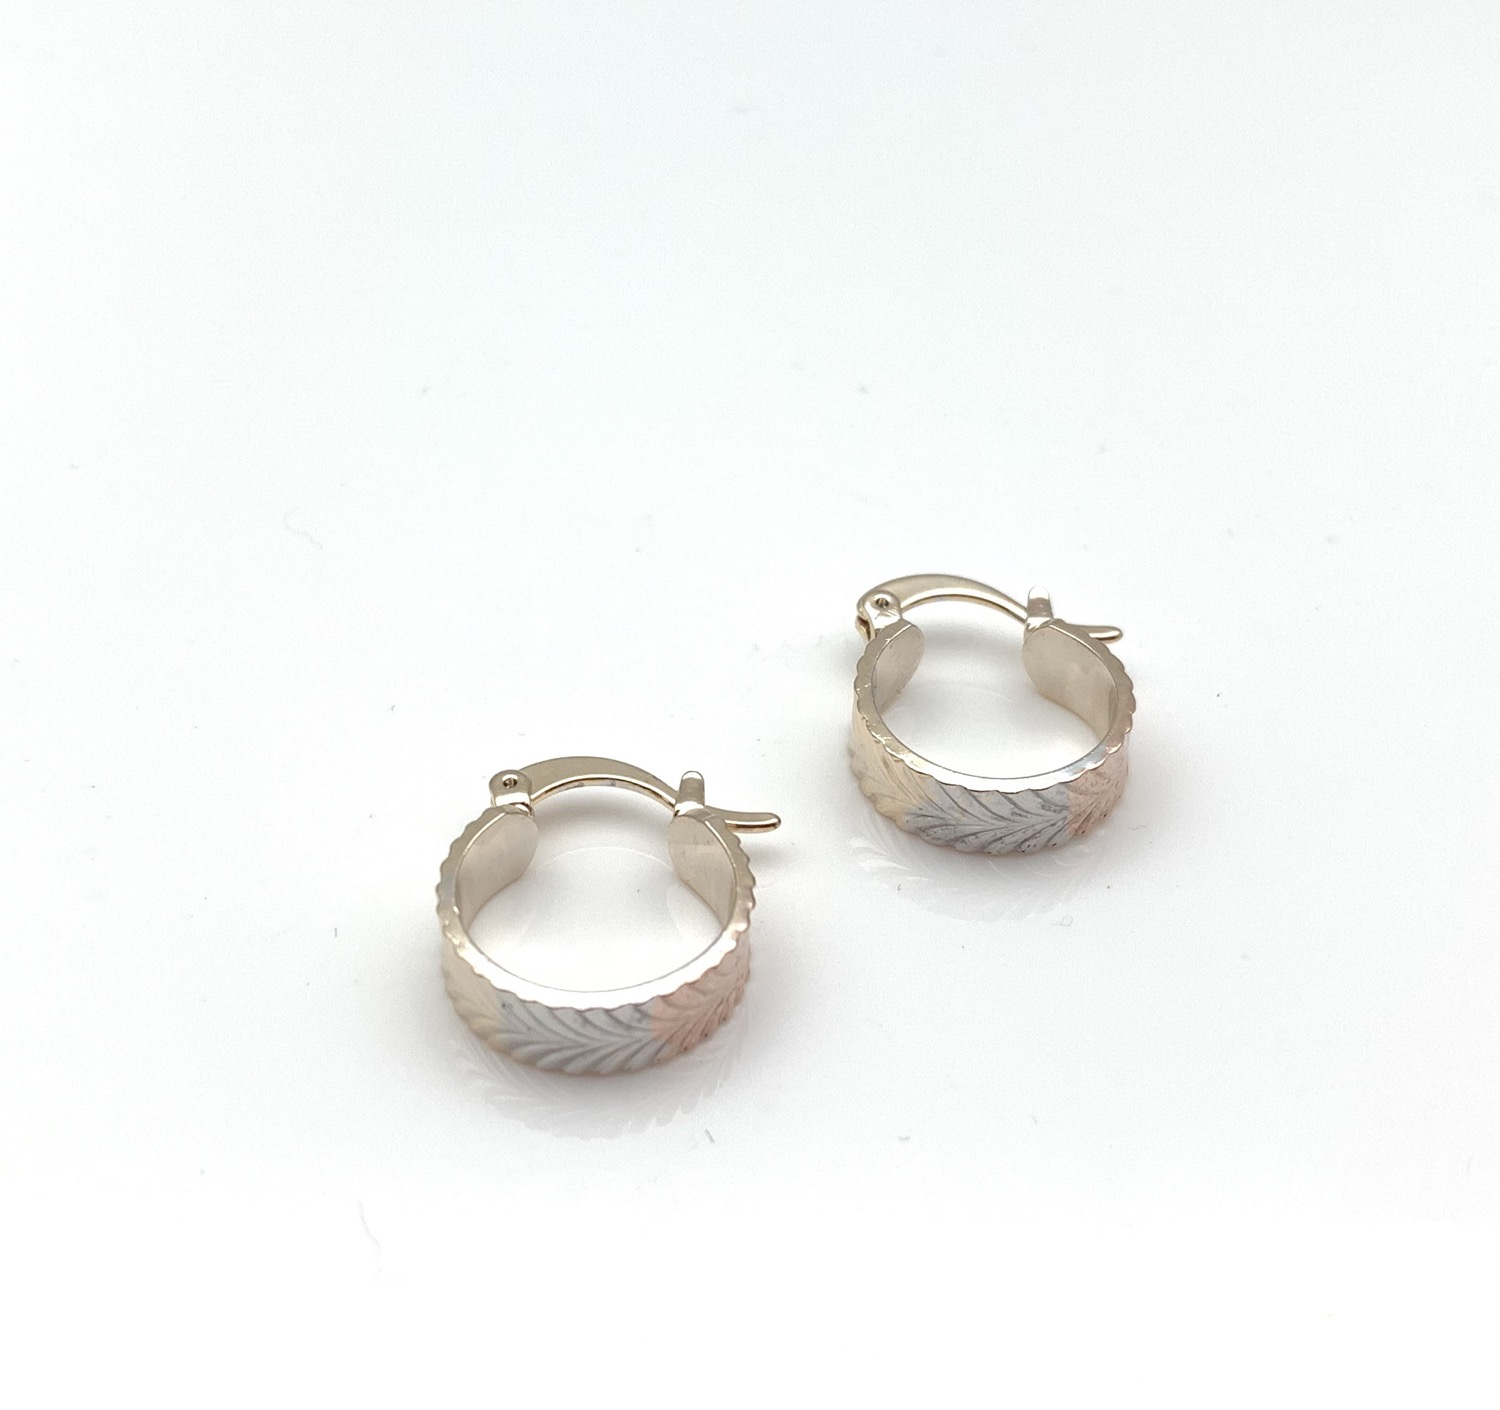 Thumbnail: H132 Tricolor Leaf Pattern Small Hoop